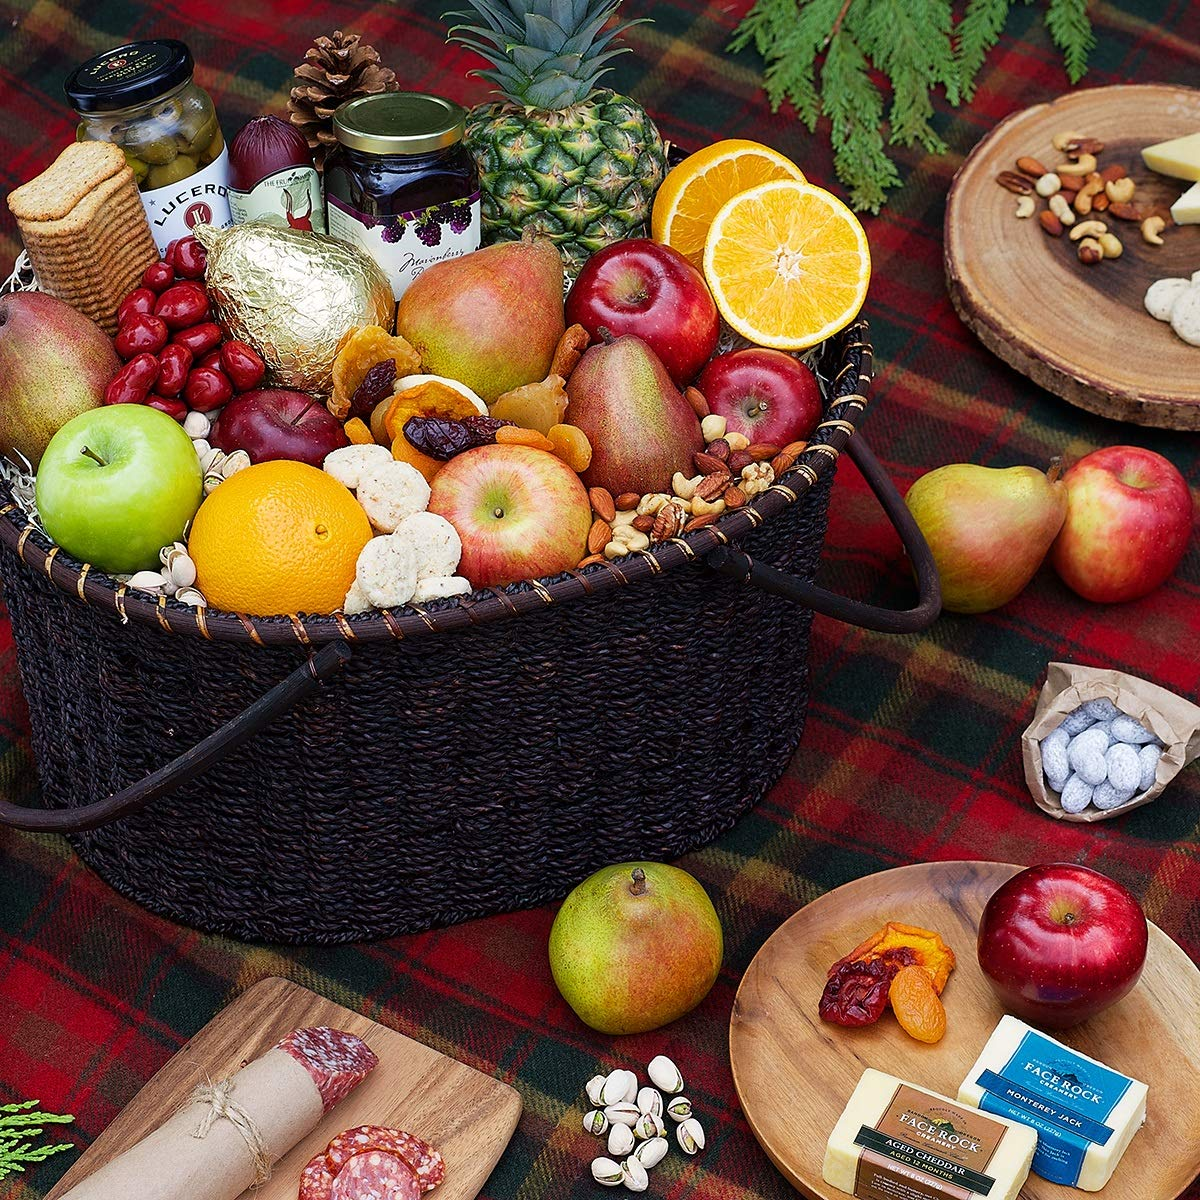 The Fruit Company Season's Bounty Gourmet Fruit Basket - 16 pieces fresh pears, apples, oranges and pineapple 2 Fresh Oregon Cheeses Summer Sausage Gentile Salami Assortment Savory & Sweet Treats